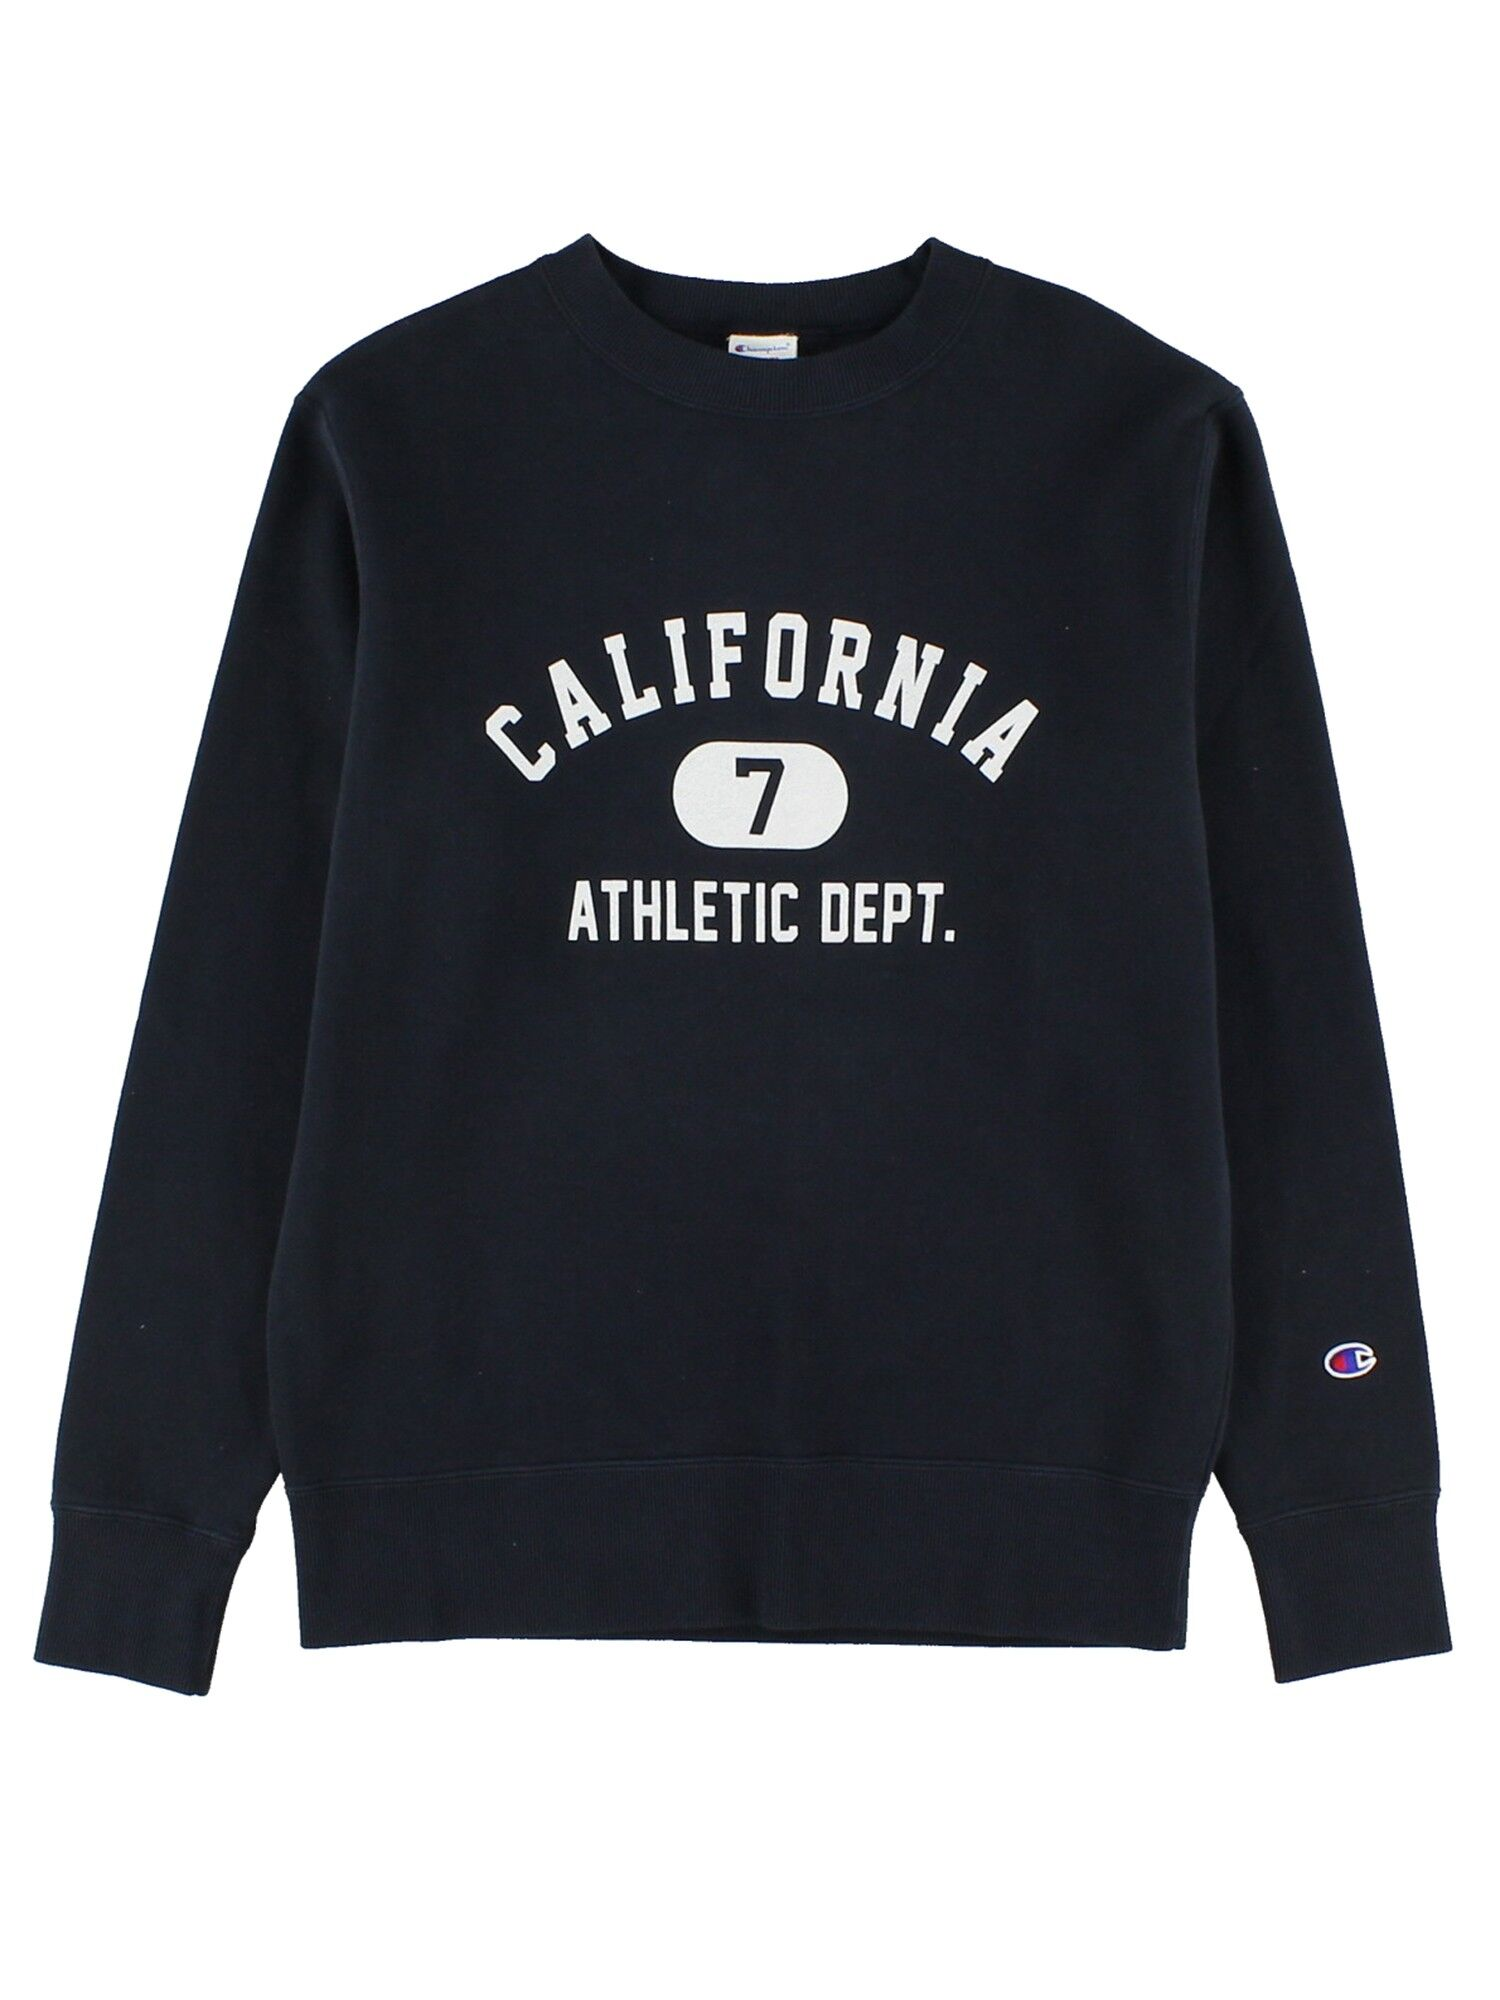 Men'sChampionL/SCREWSWEAT